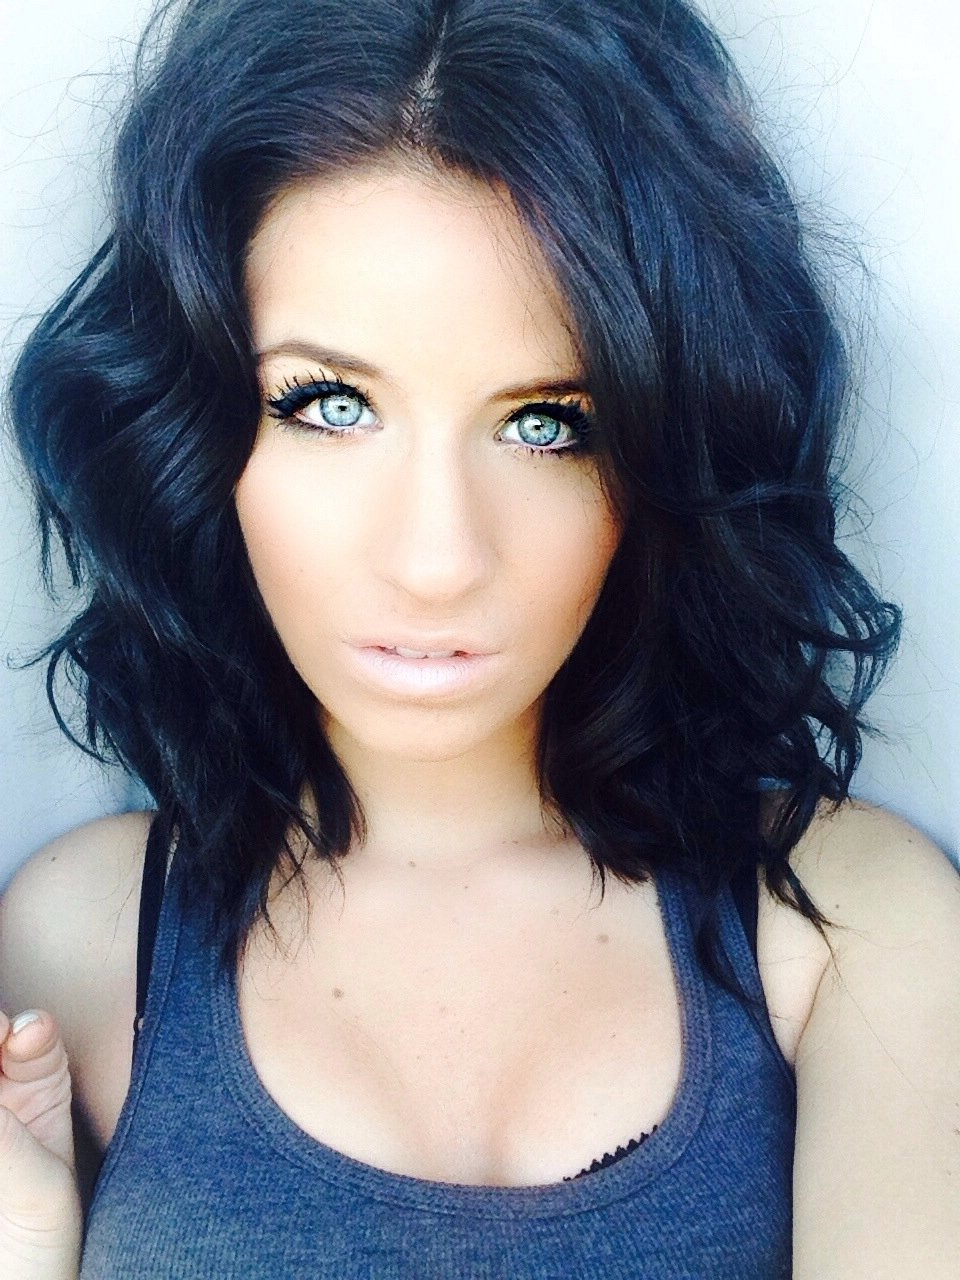 10 Great Blue And Black Hair Color Ideas photo blue and black hair colors blue black hair color ideas hair 2020